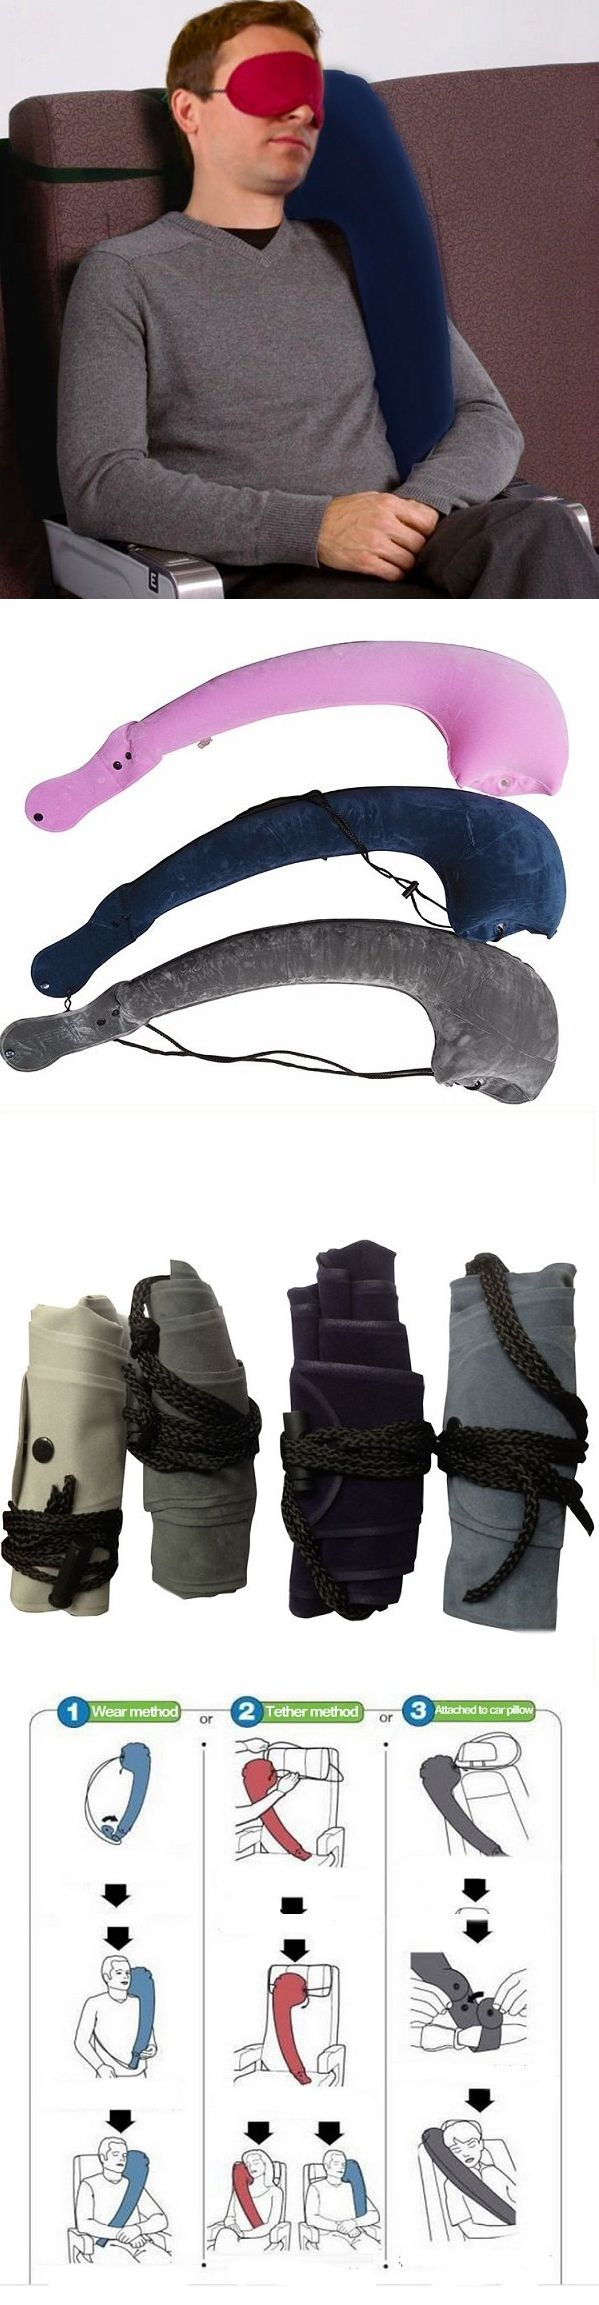 US$6.22  90x28cm Comfortable Portable Inflatable Pillow Camping Travel Neck Pillow Cushion